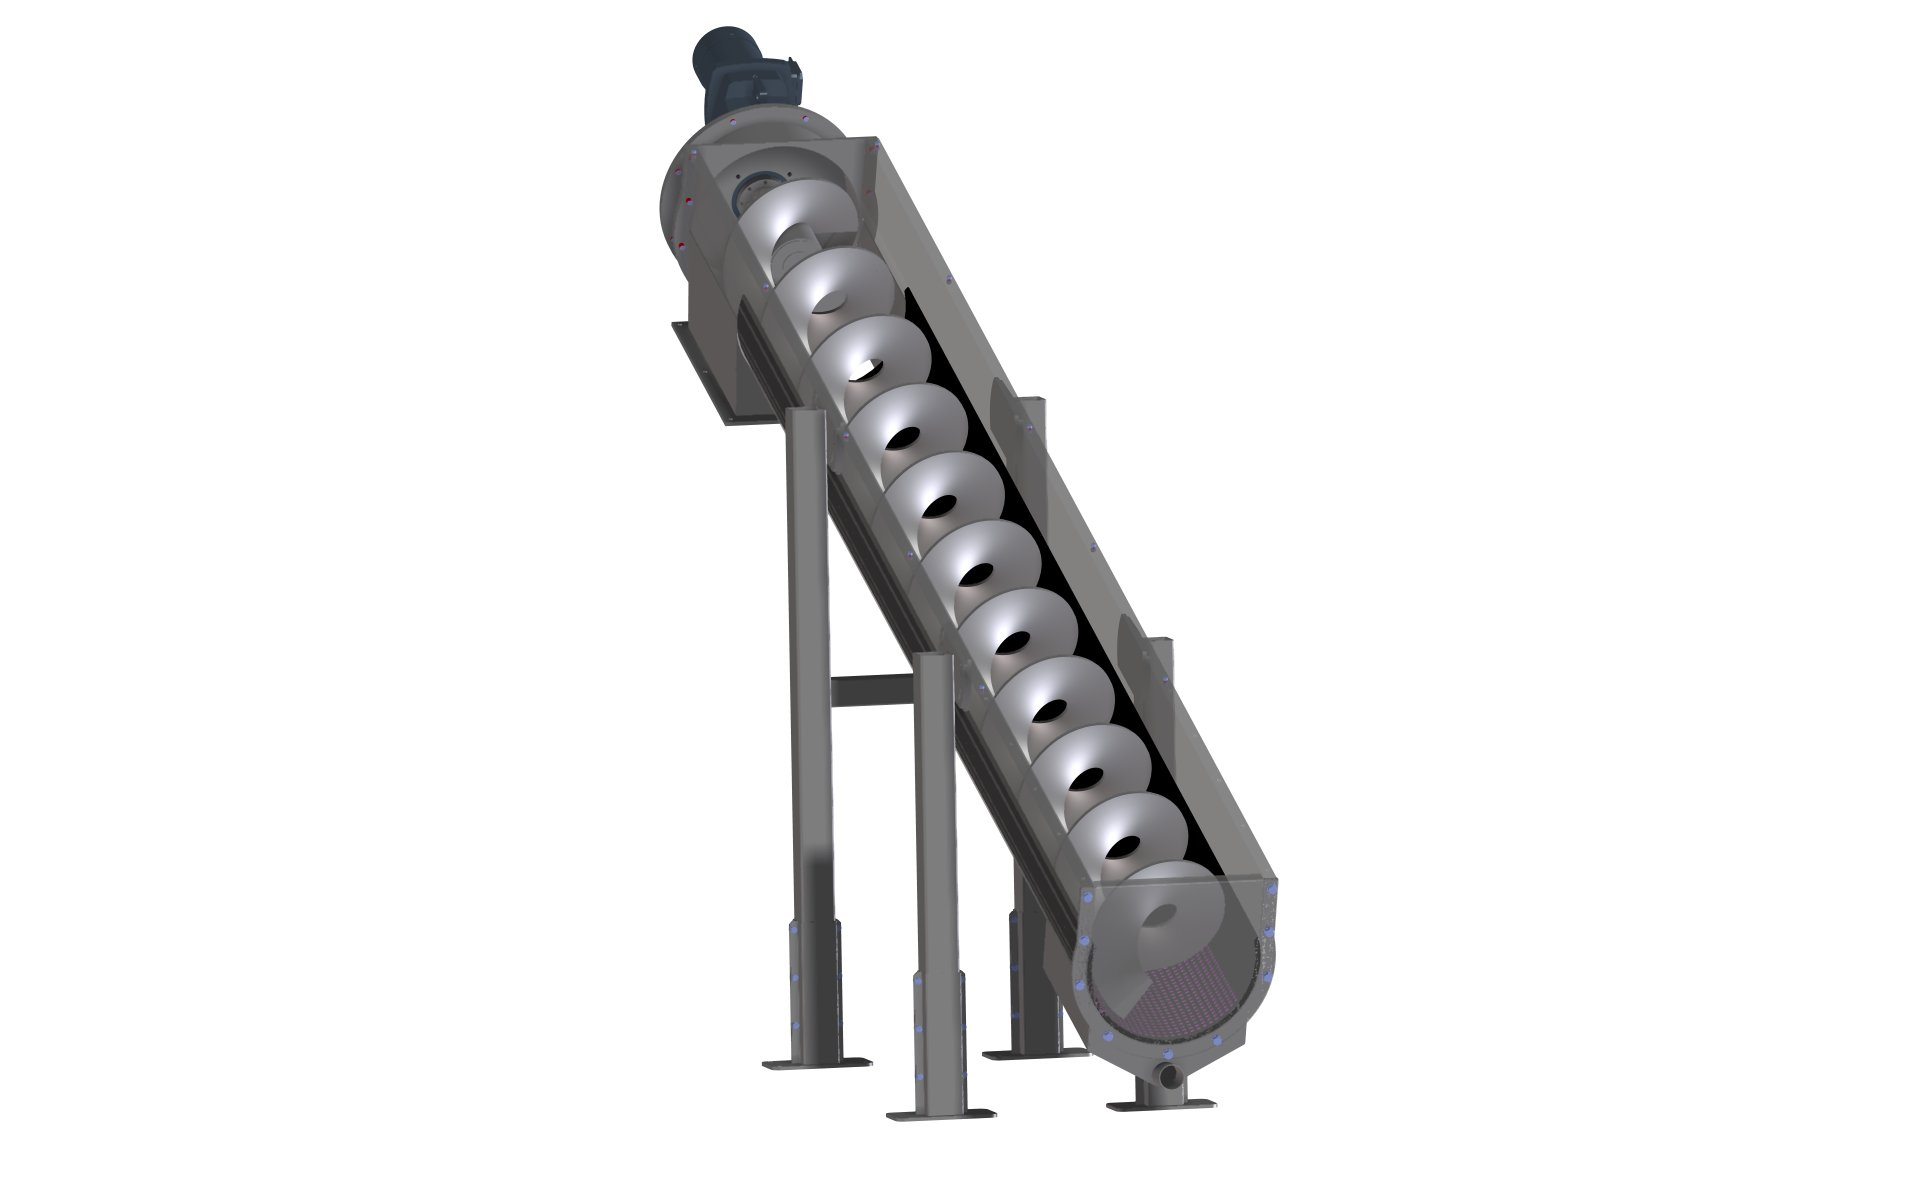 Spiral conveyor inclined, conveyed material: Sewage sludge